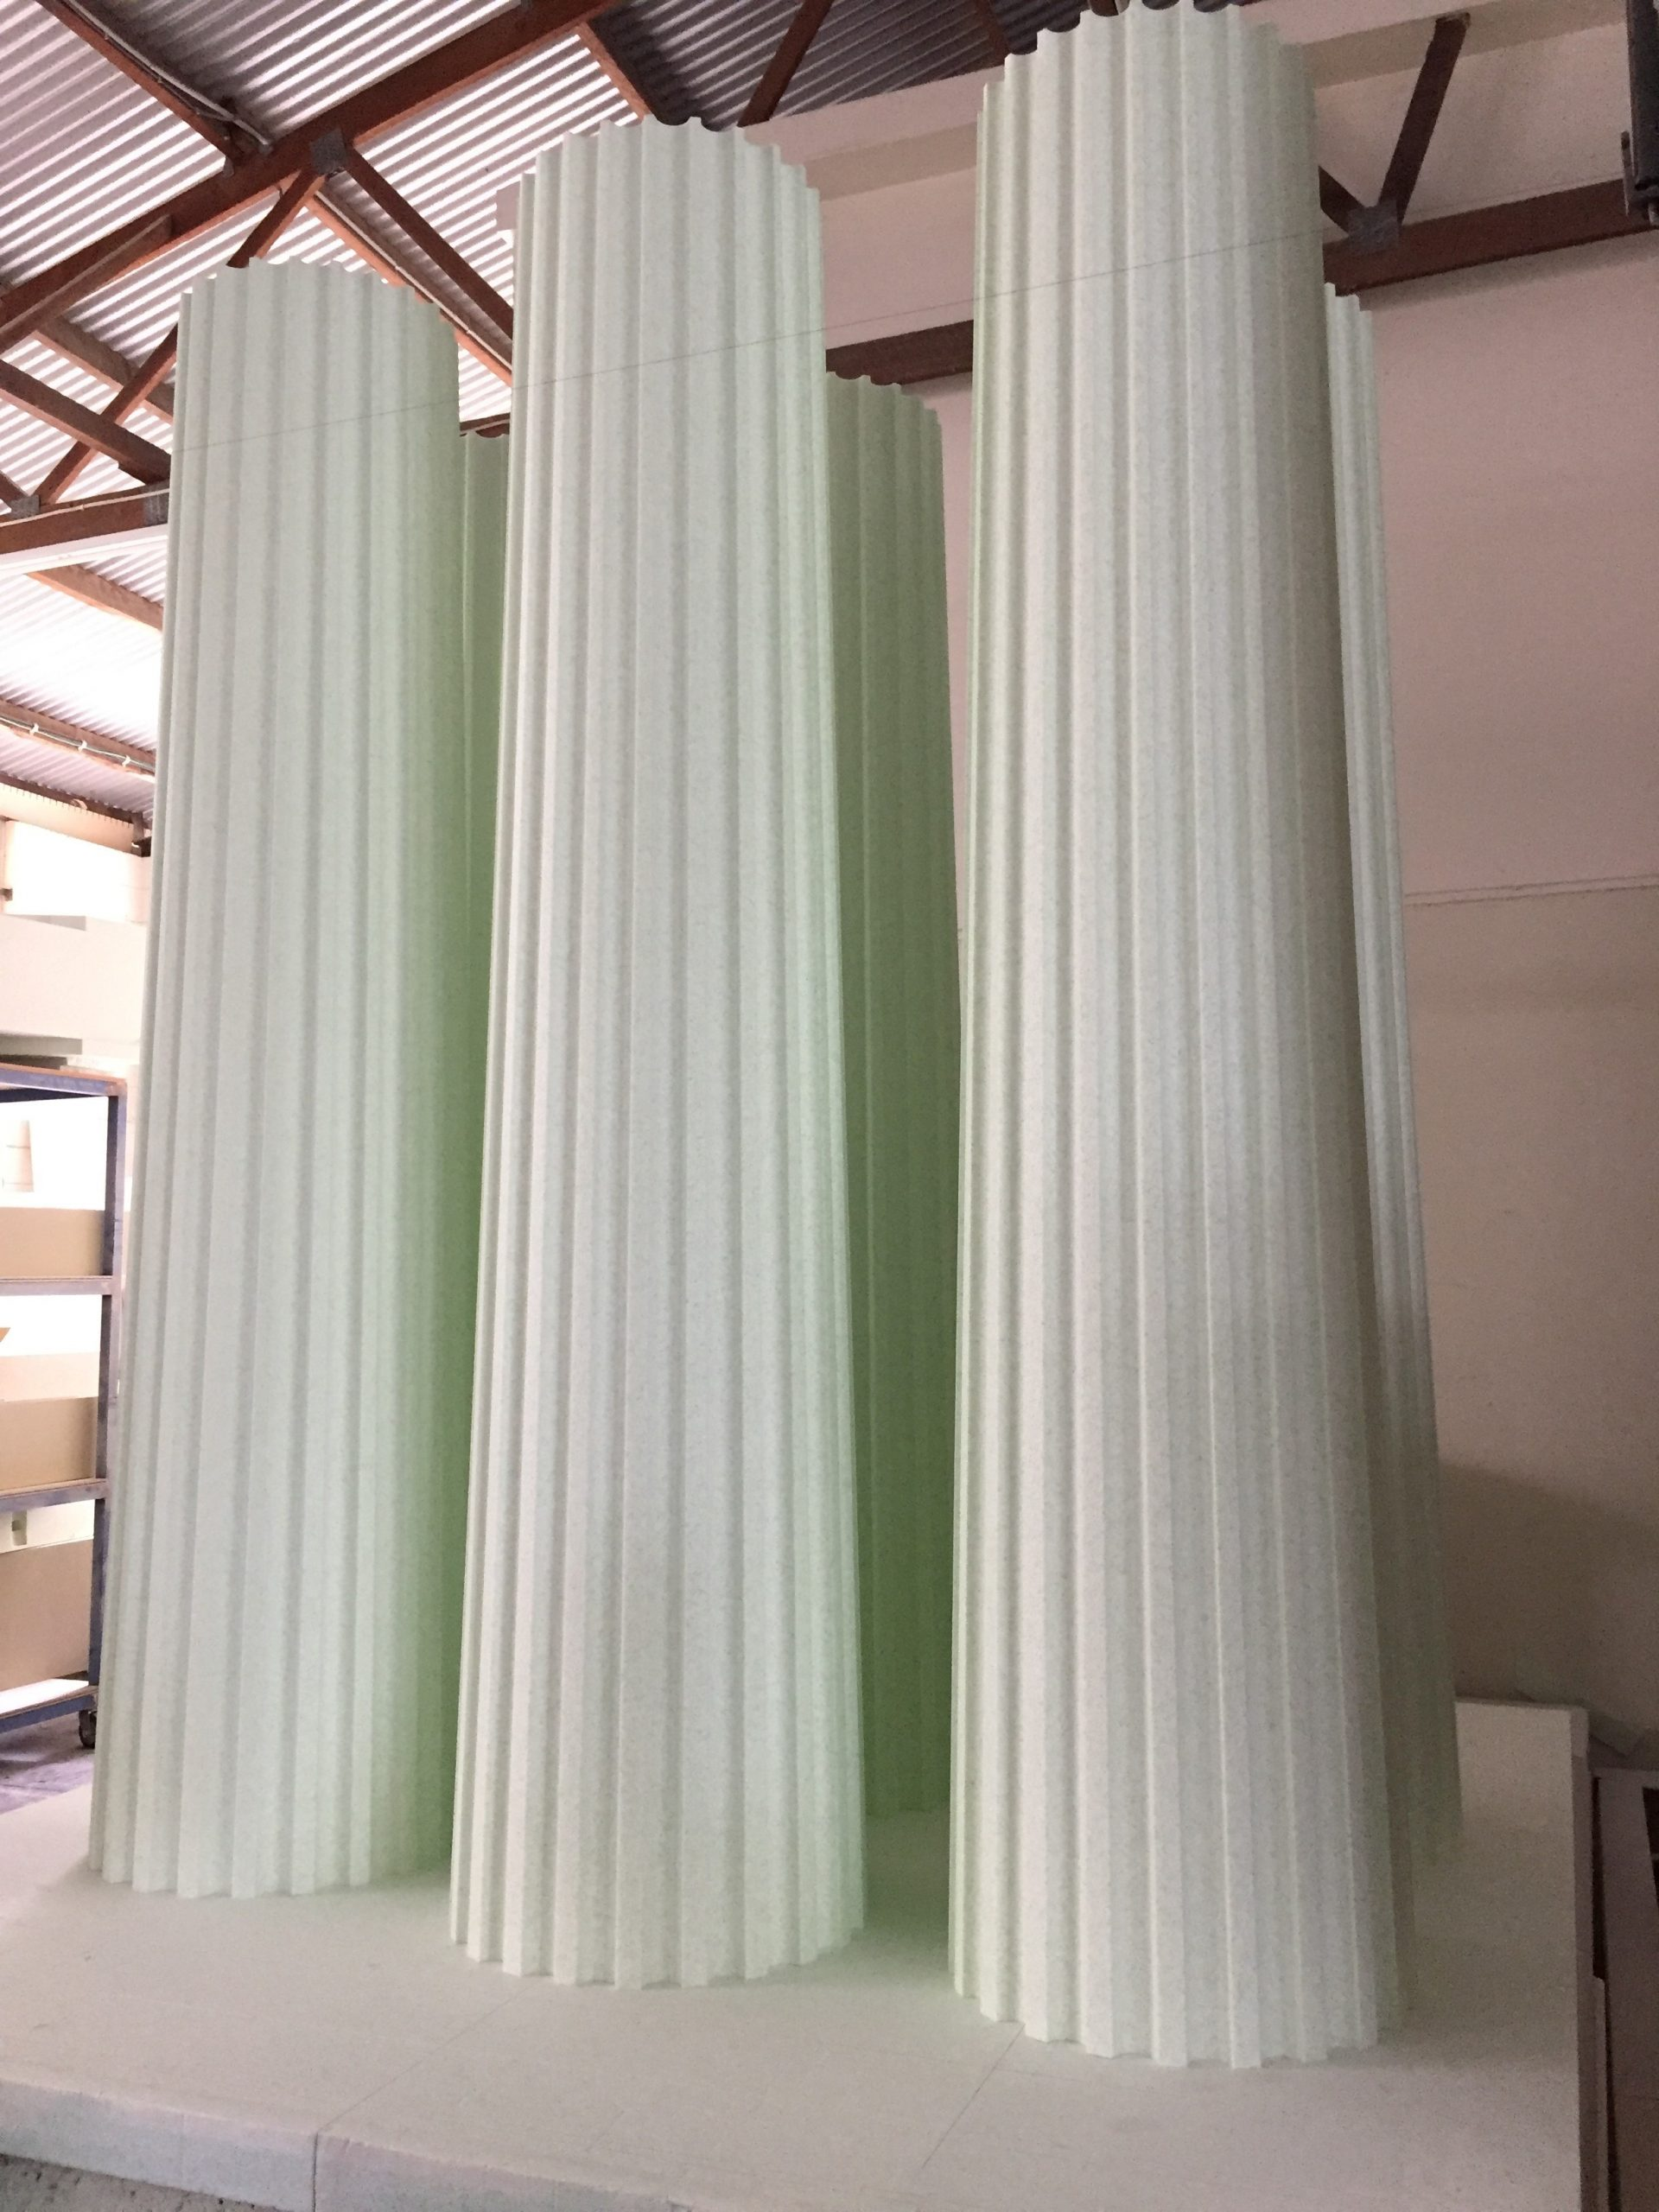 Tapered Column 1.2 scaled - #TaperedColumns